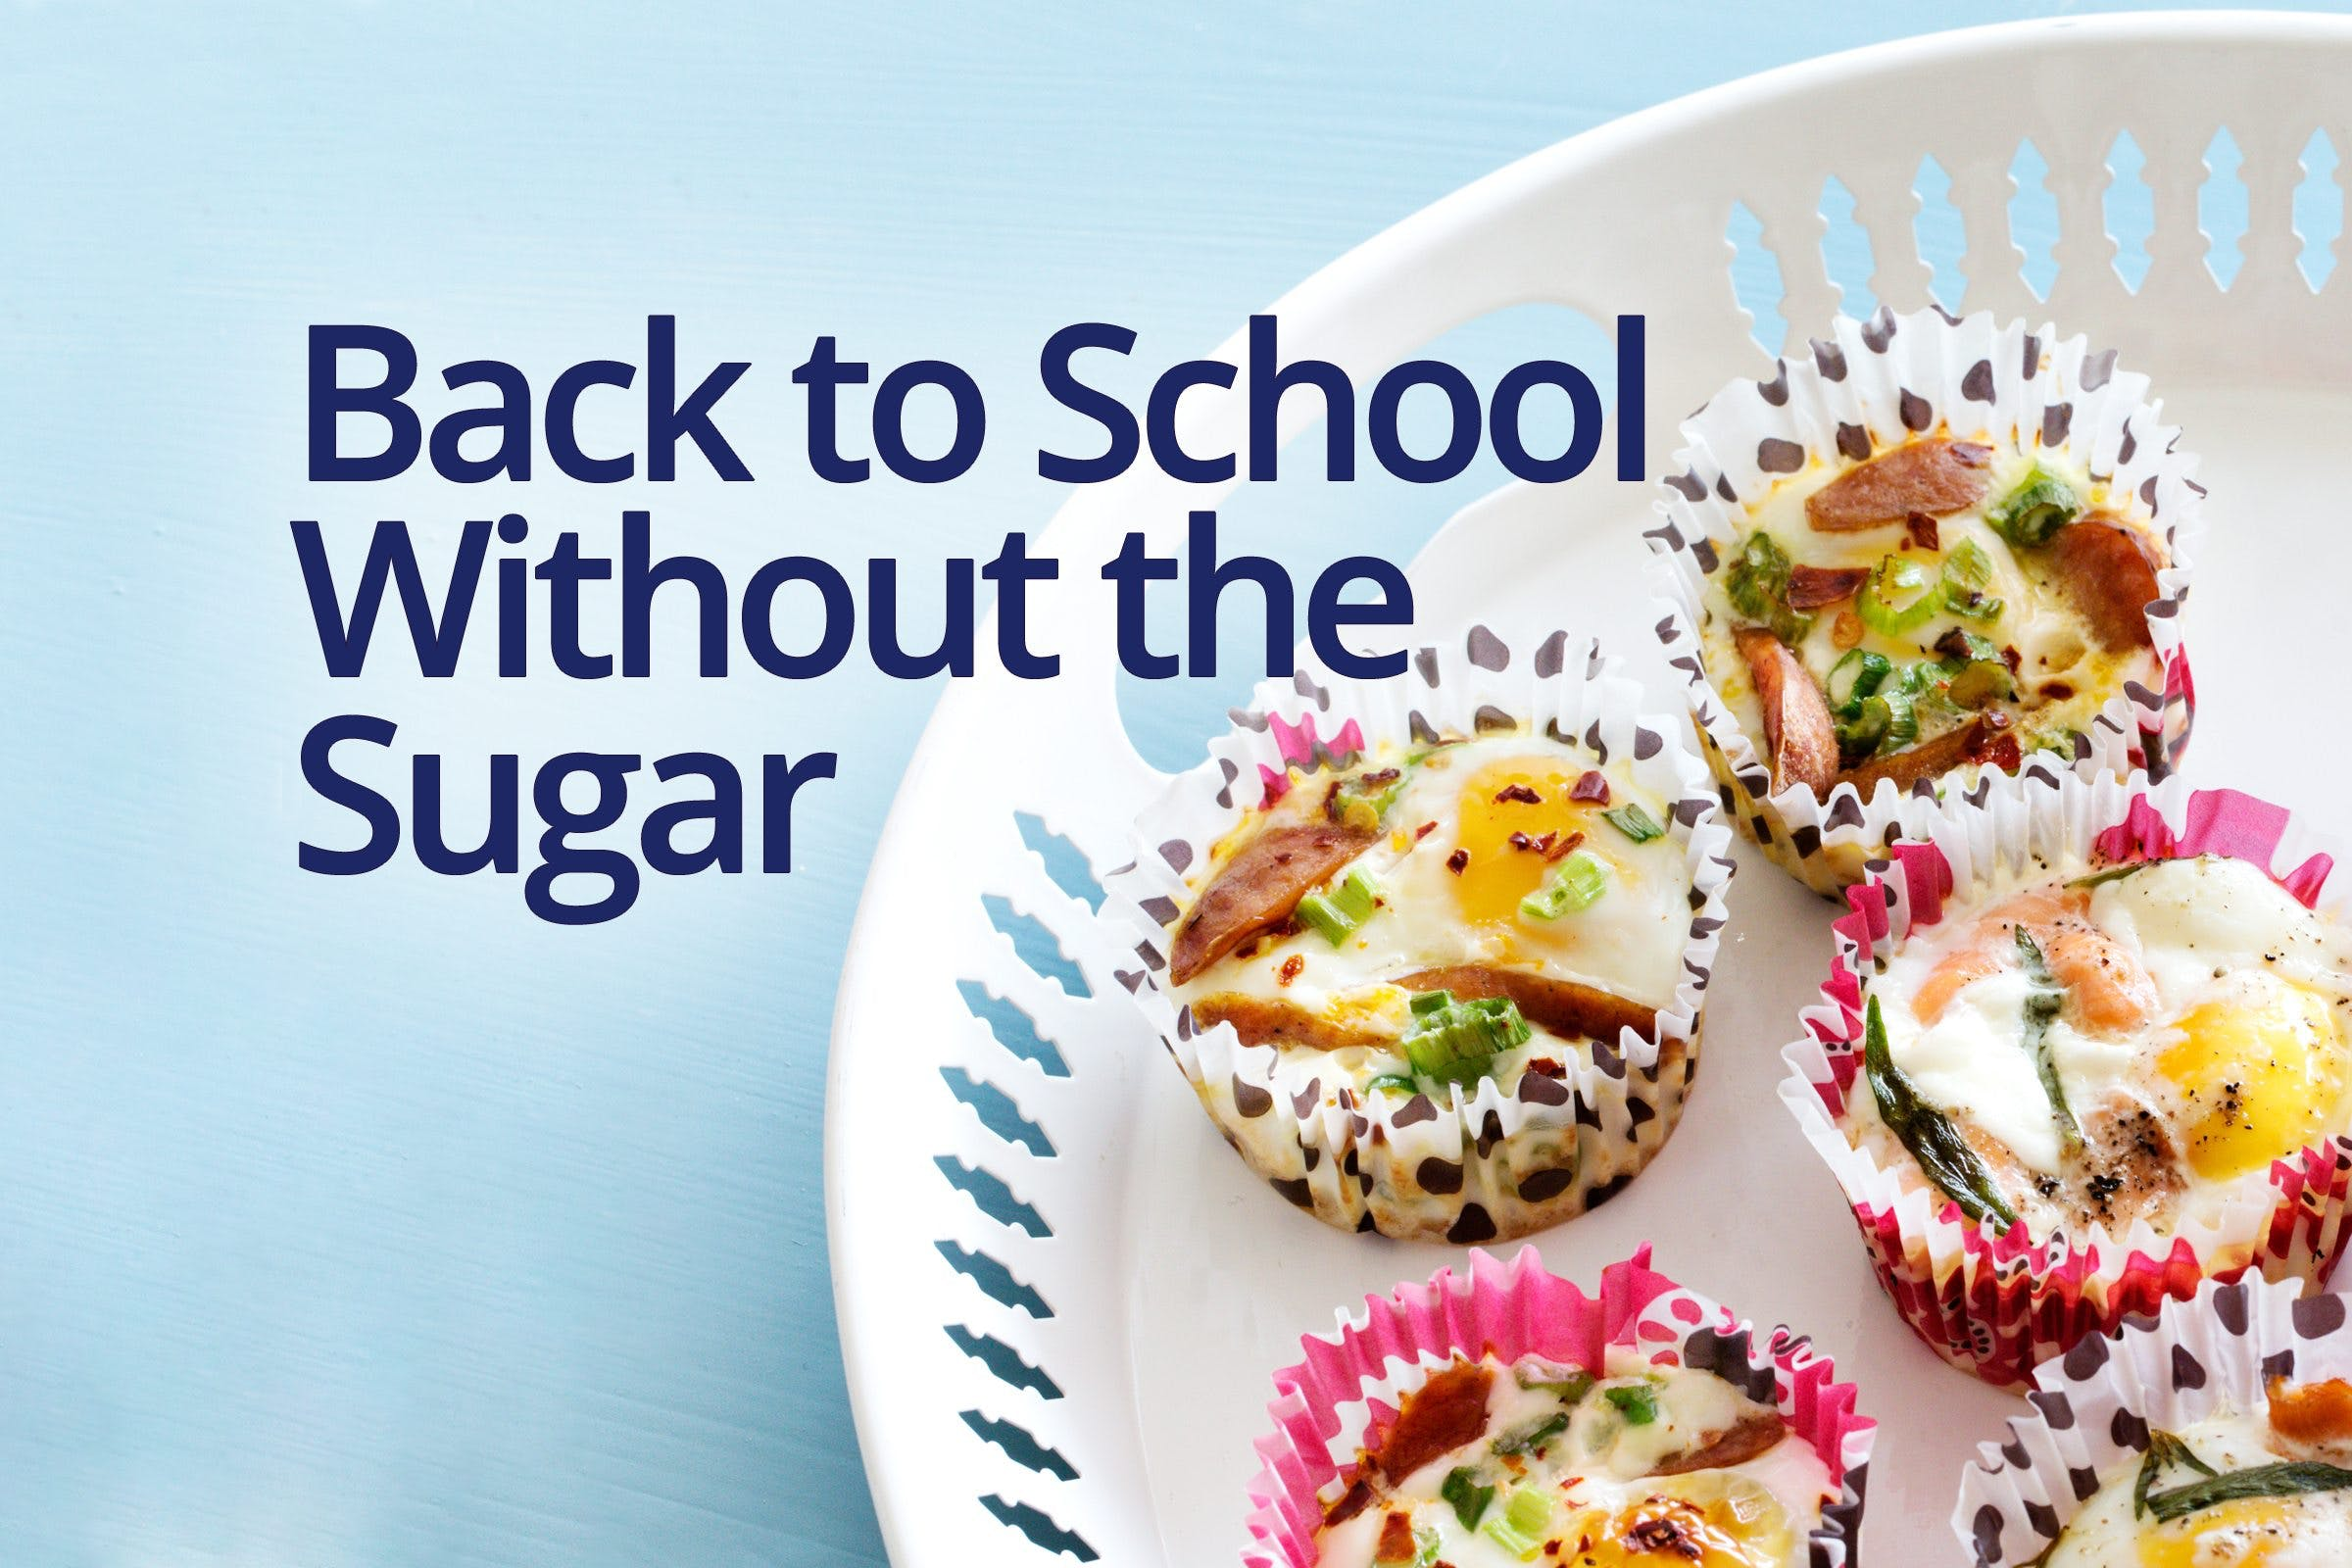 Back to School Without the Sugar